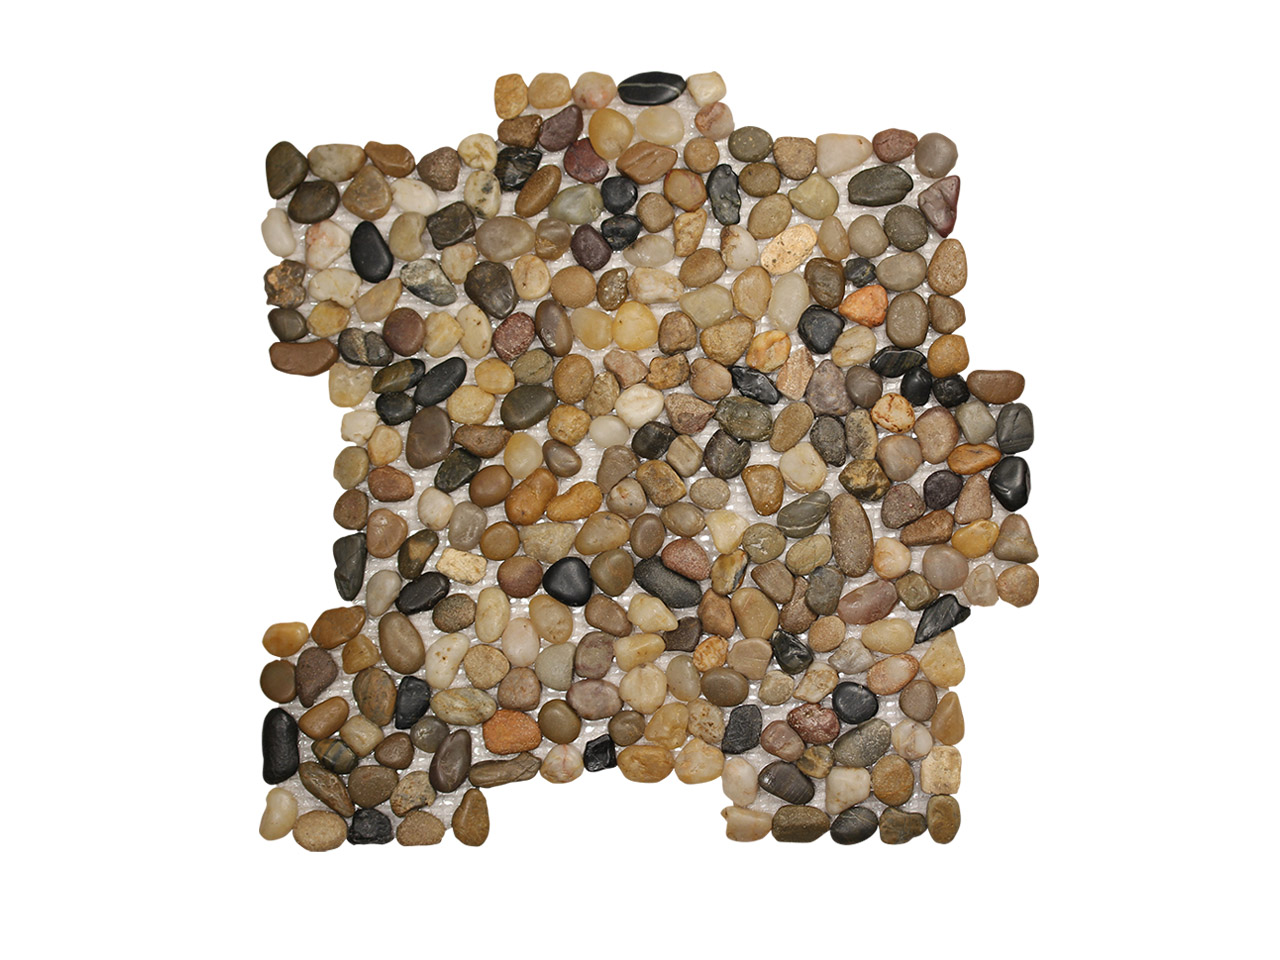 pebble-stone-small-round-mixed